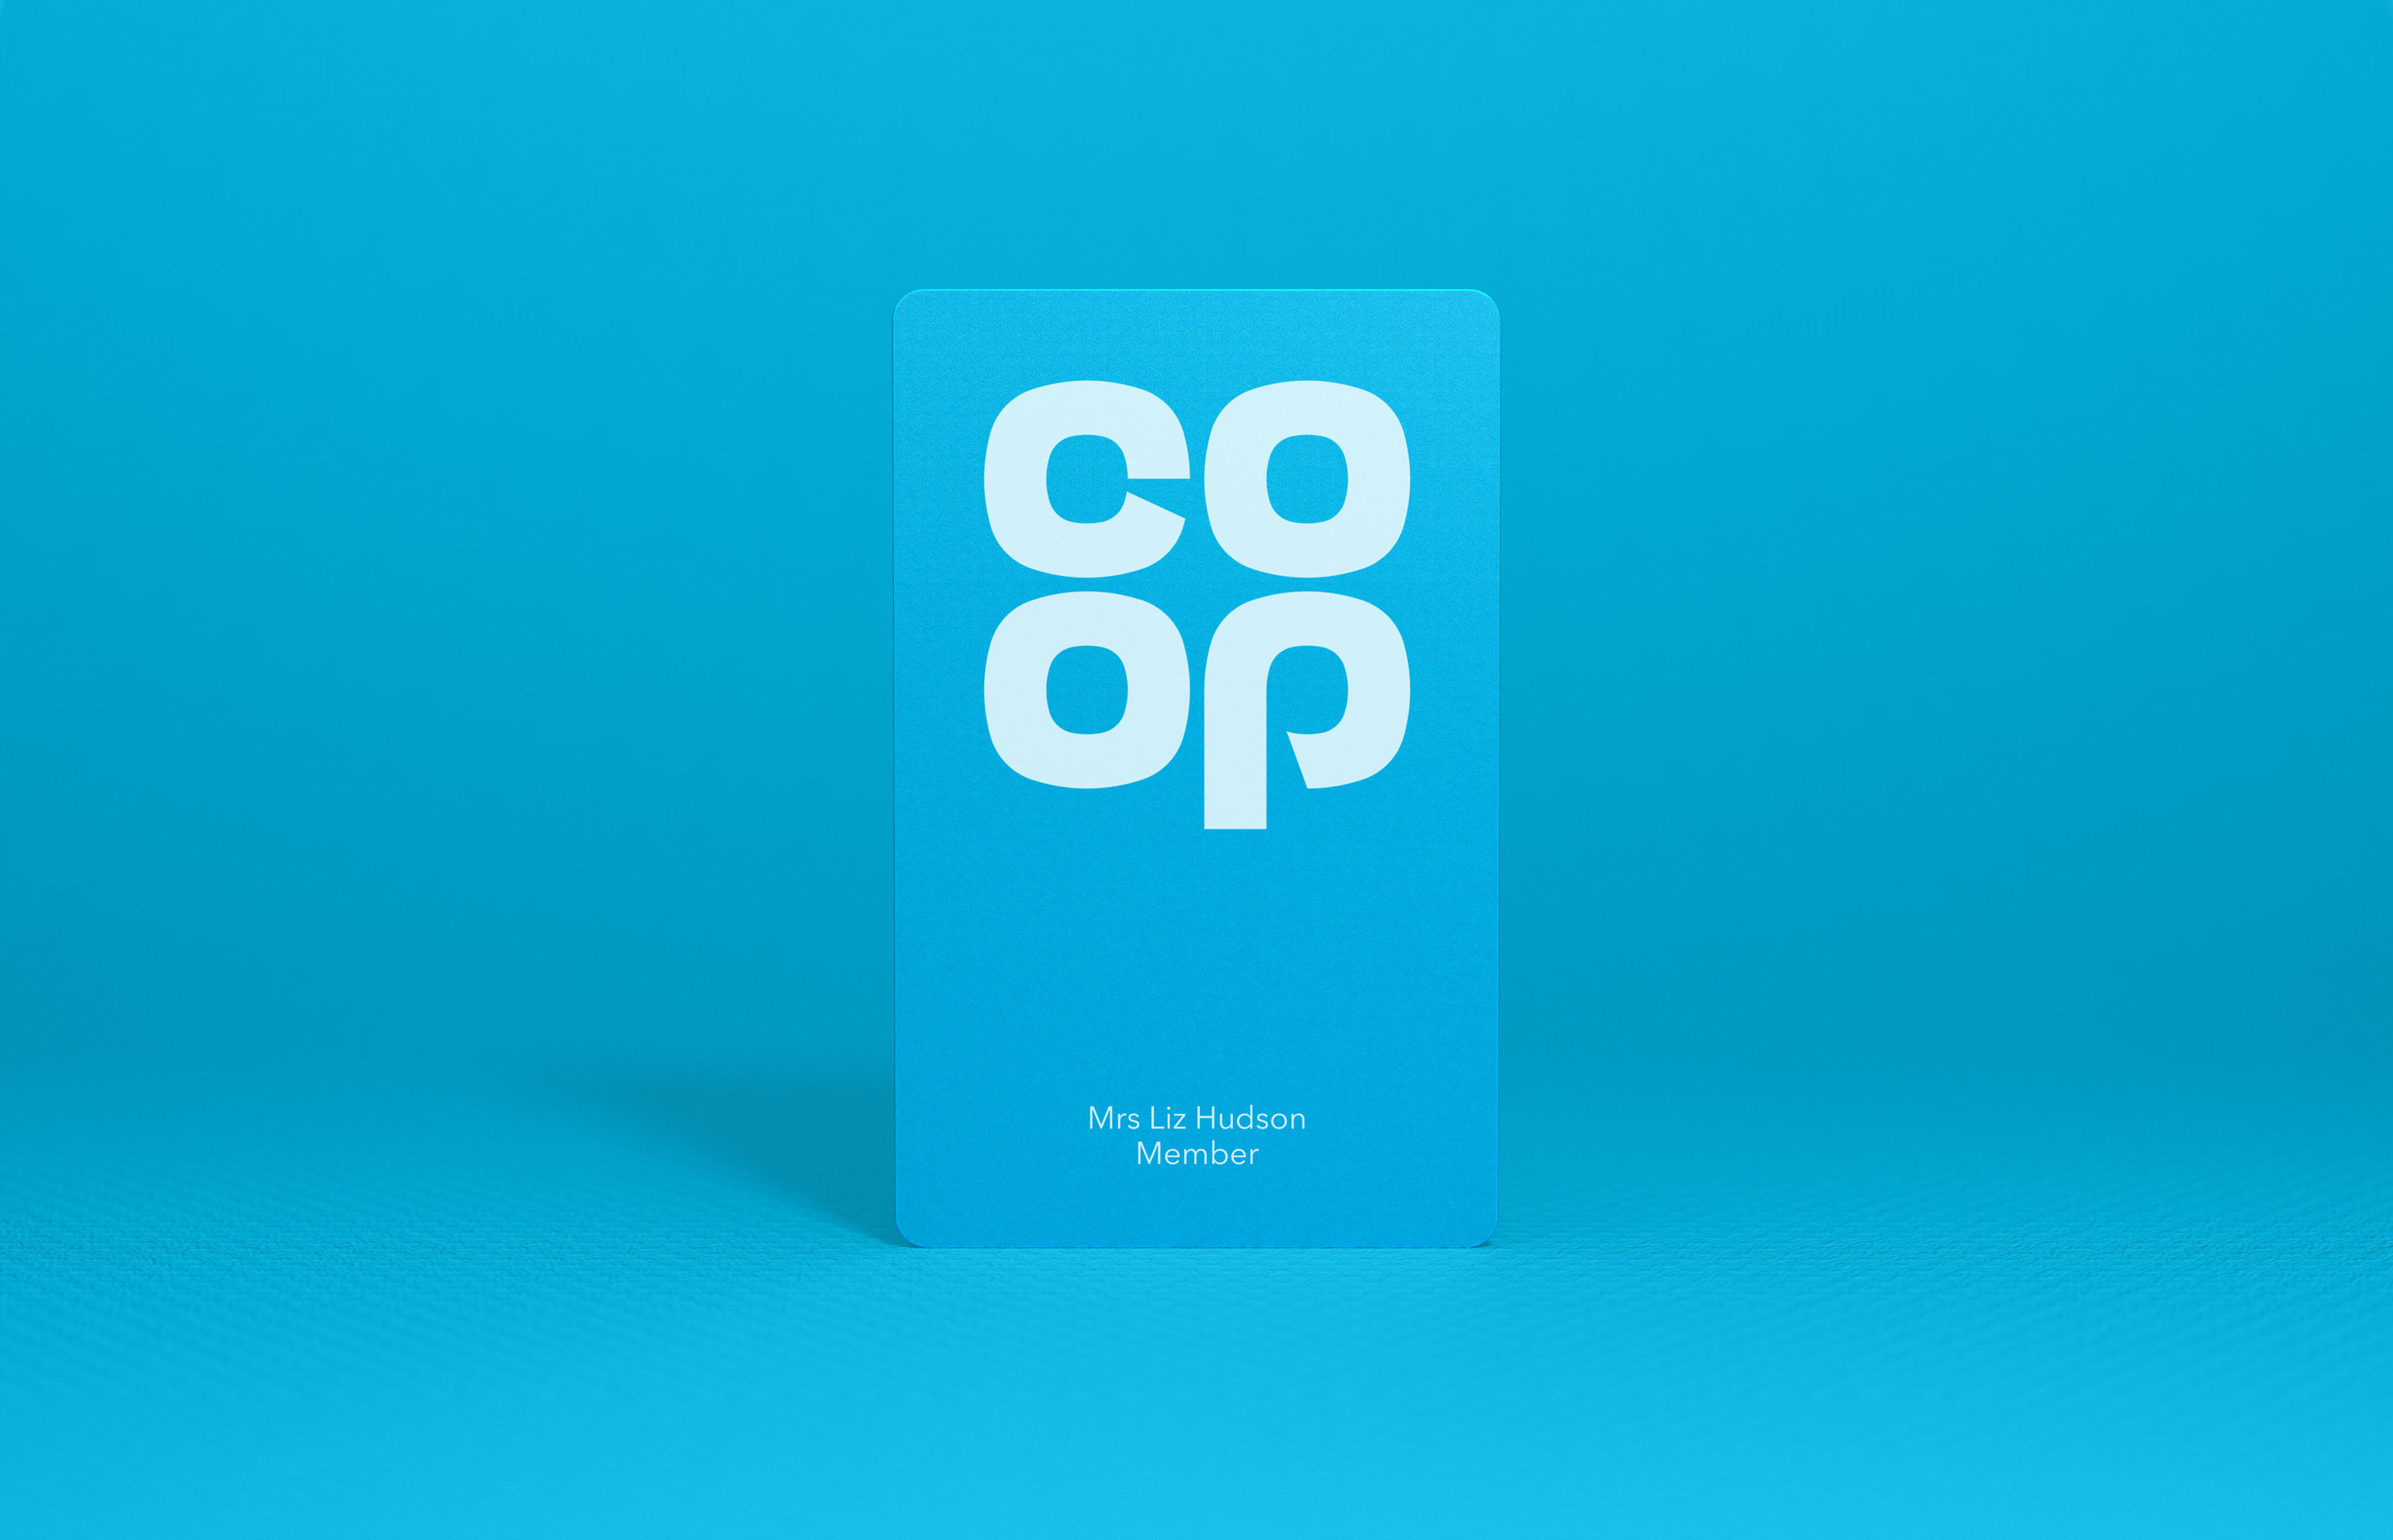 North_Coop_003_Card